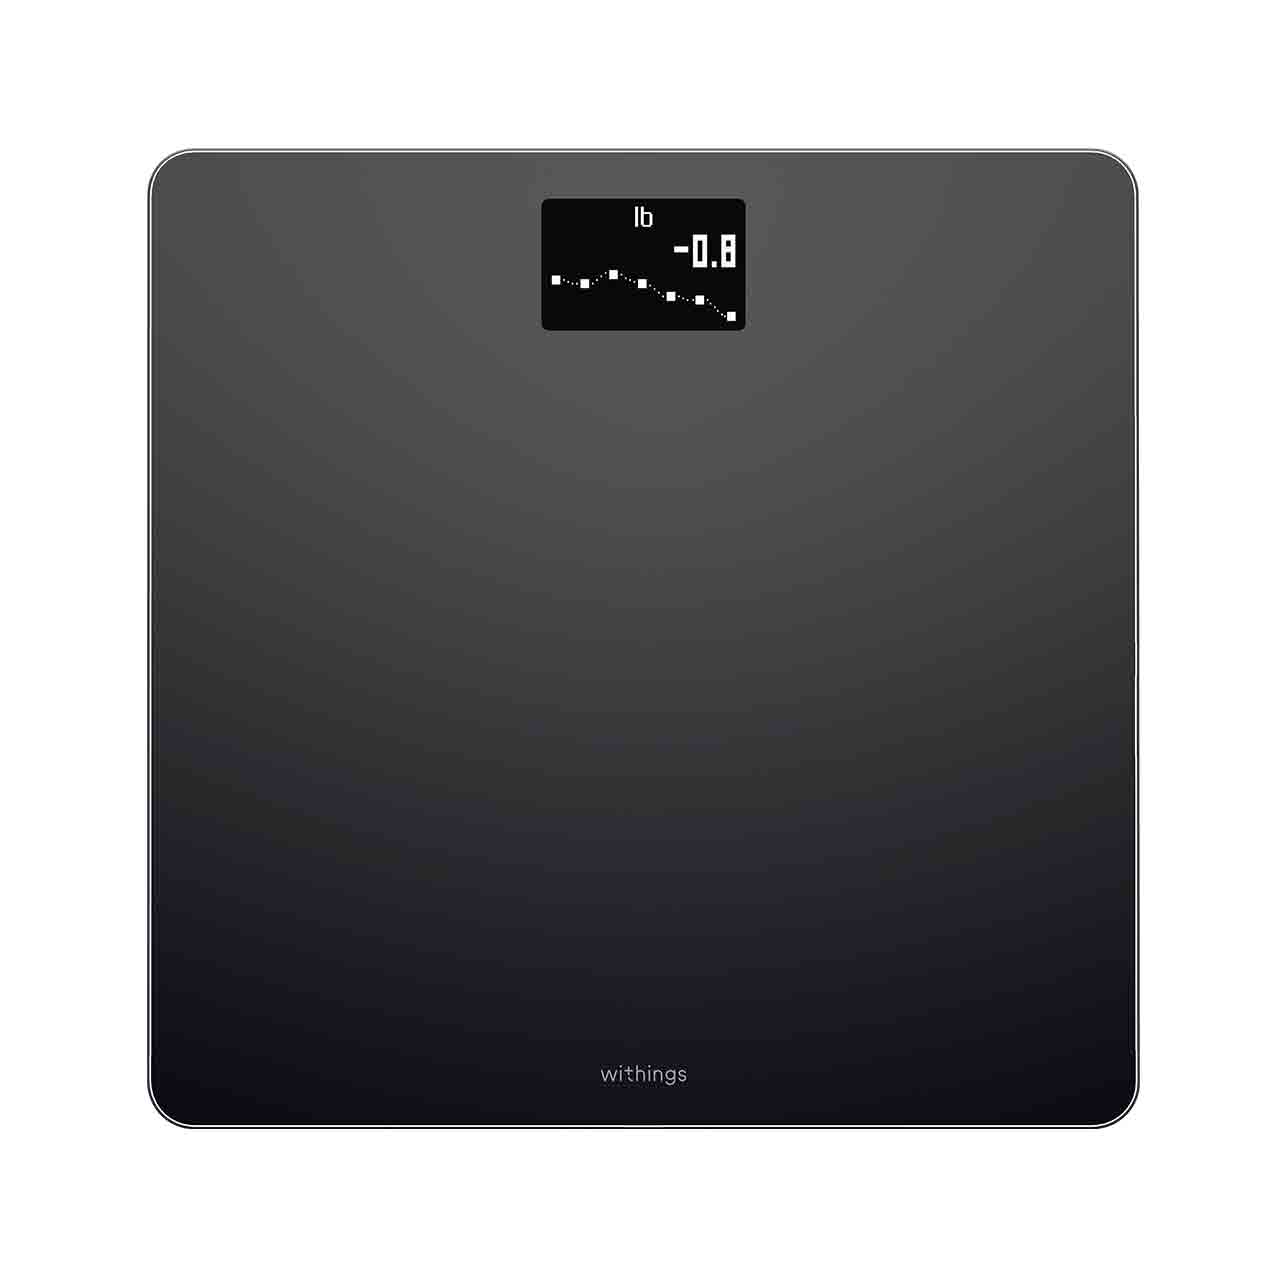 Withings Body (Nokia), Black - Weight & BMI Wi-Fi Scale - Wi-Fi sync, Multi-user, Pregnancy mode - Withings Official Store